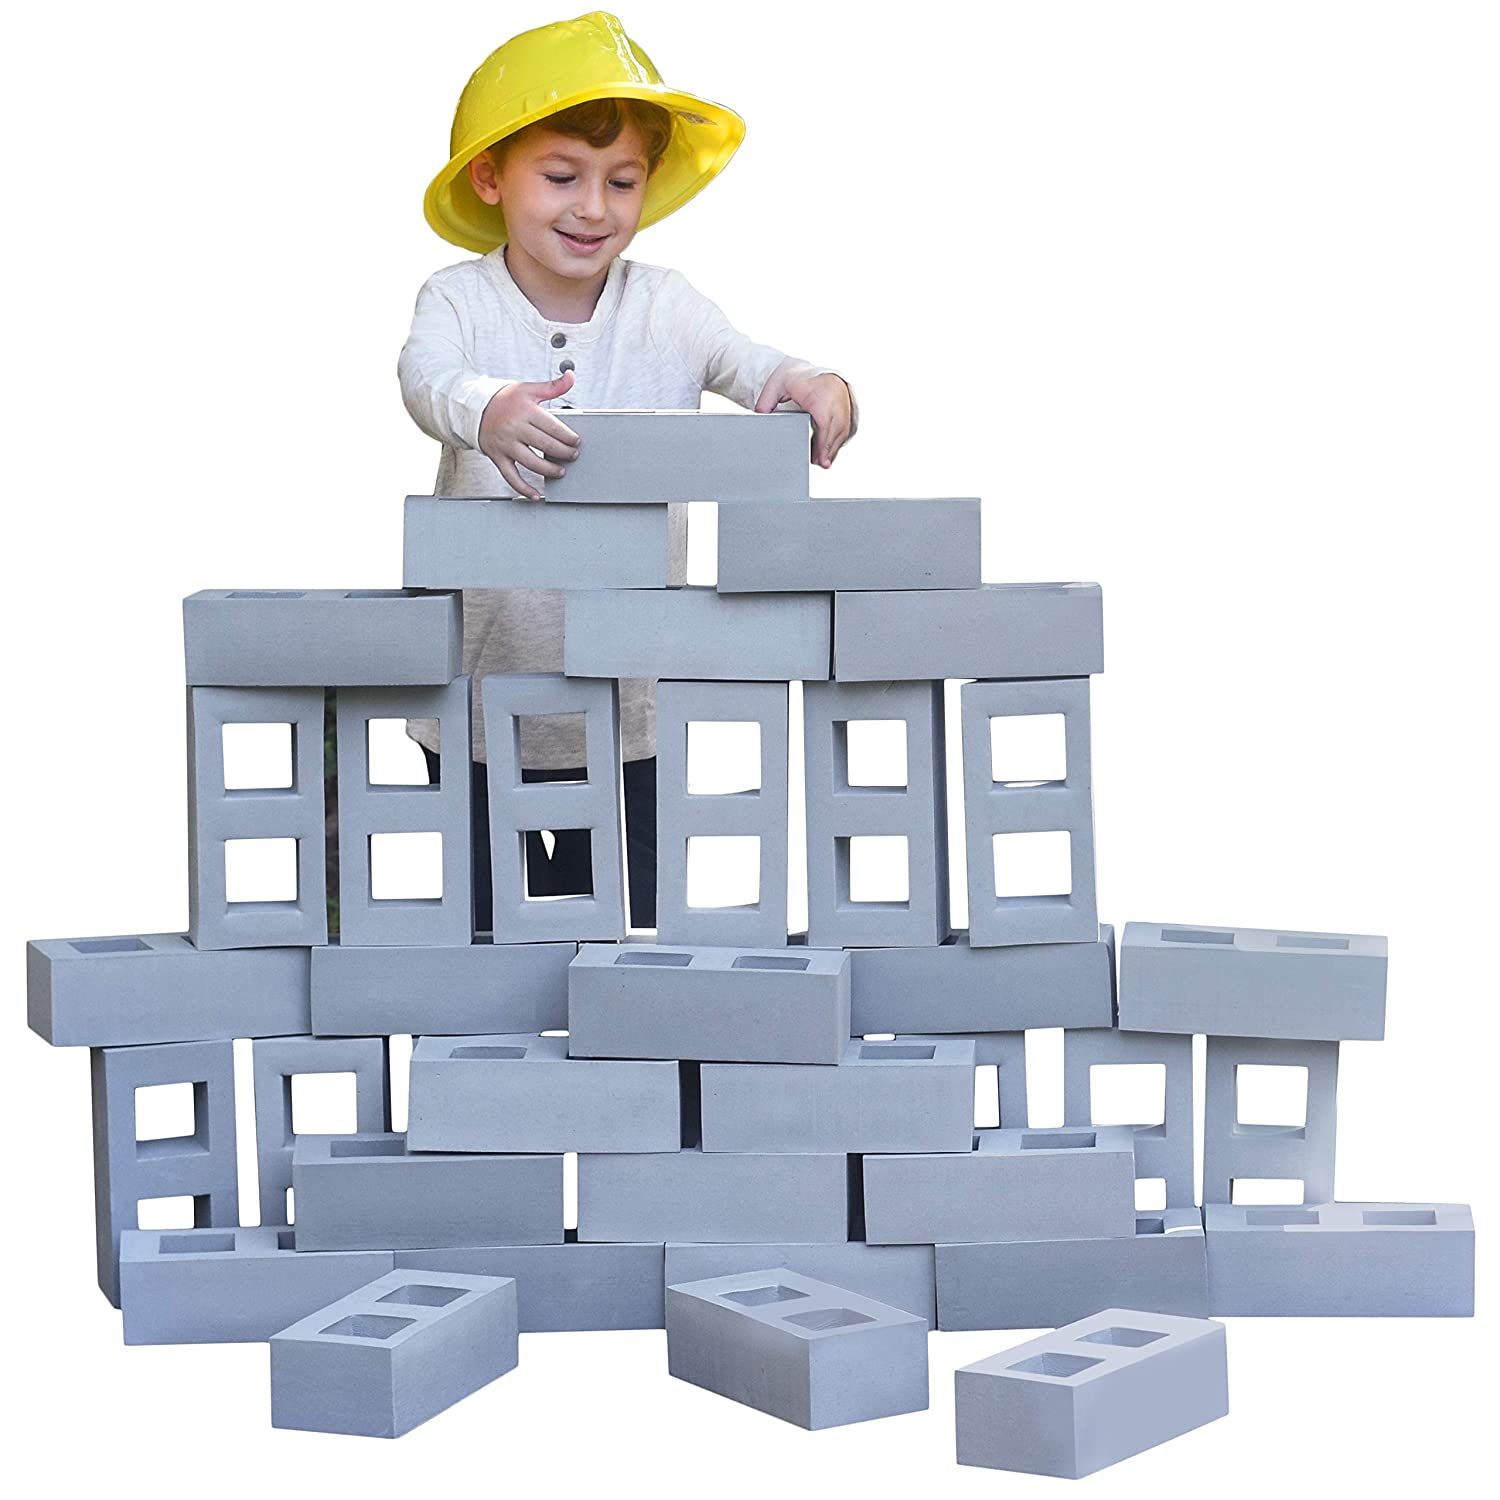 Playlearn Foam Building Blocks for Kids - 40 Pack - Jumbo Size (Not Life Size) Extra-Thick Cinder Block, Builders Set for Construction and Stacking